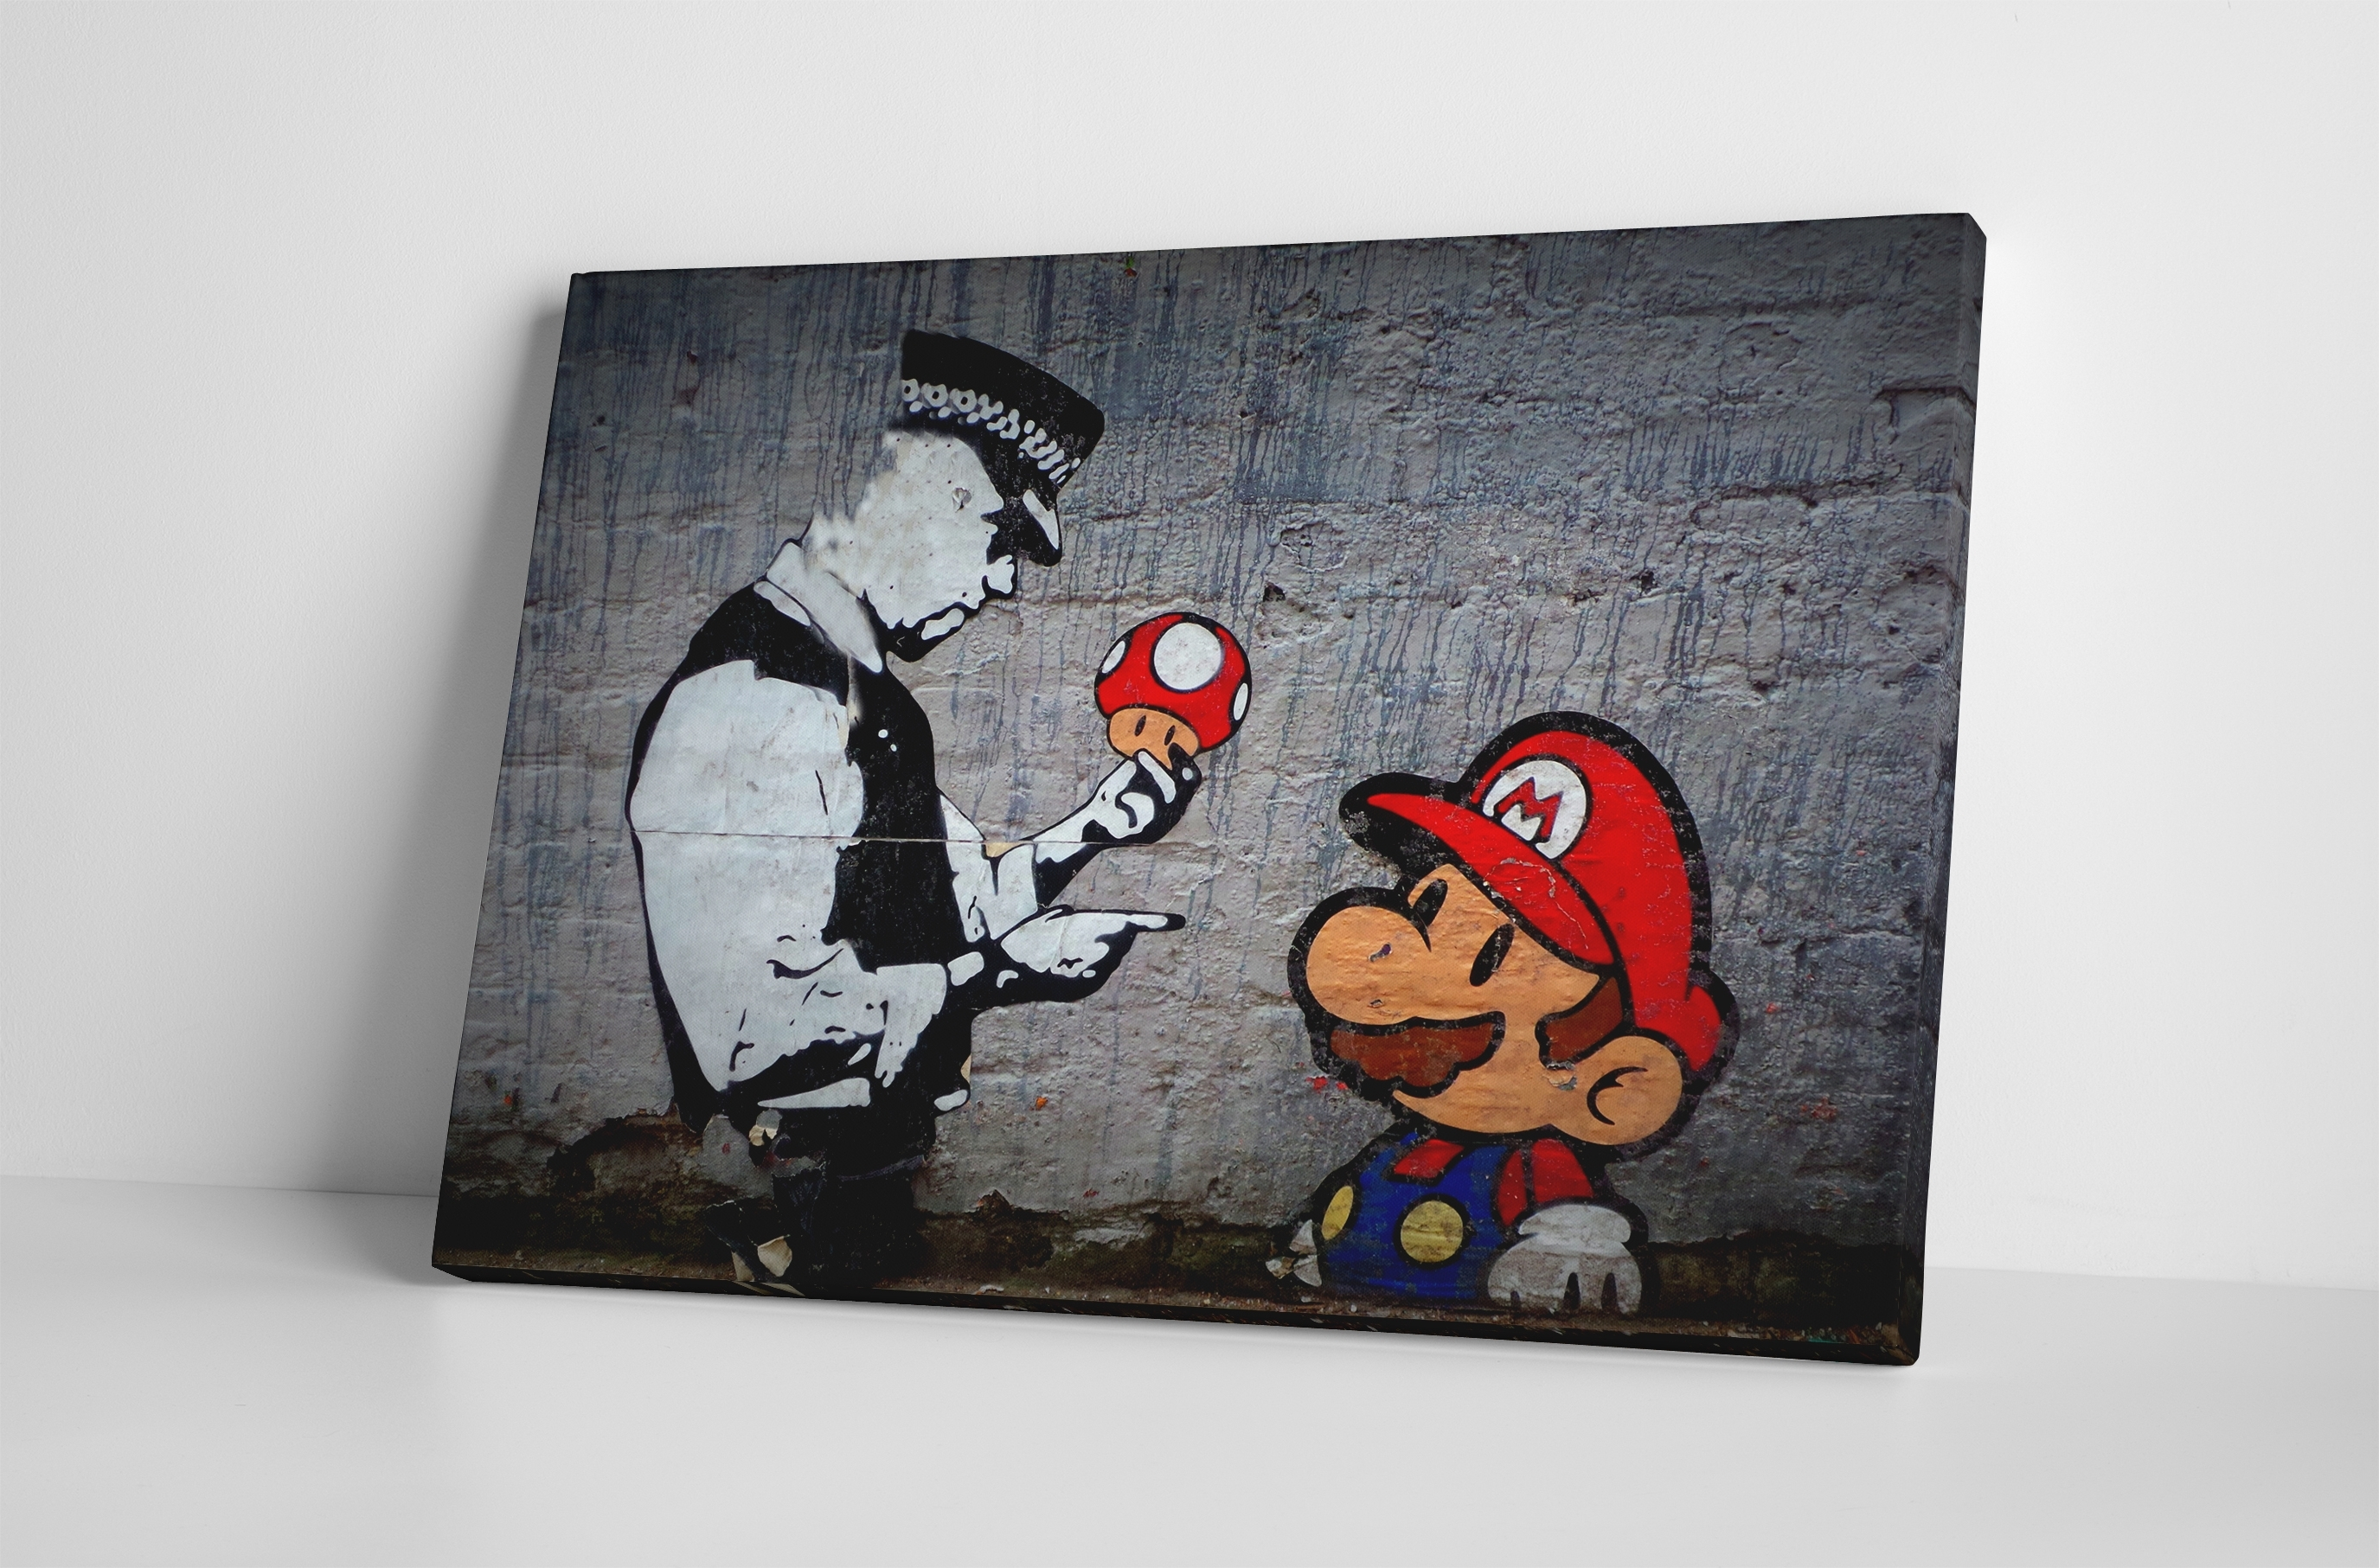 Well Known Mushroom Wall Art Intended For Banksy Mario Bros Mushroom Stretched Canvas Wall Art (View 5 of 15)